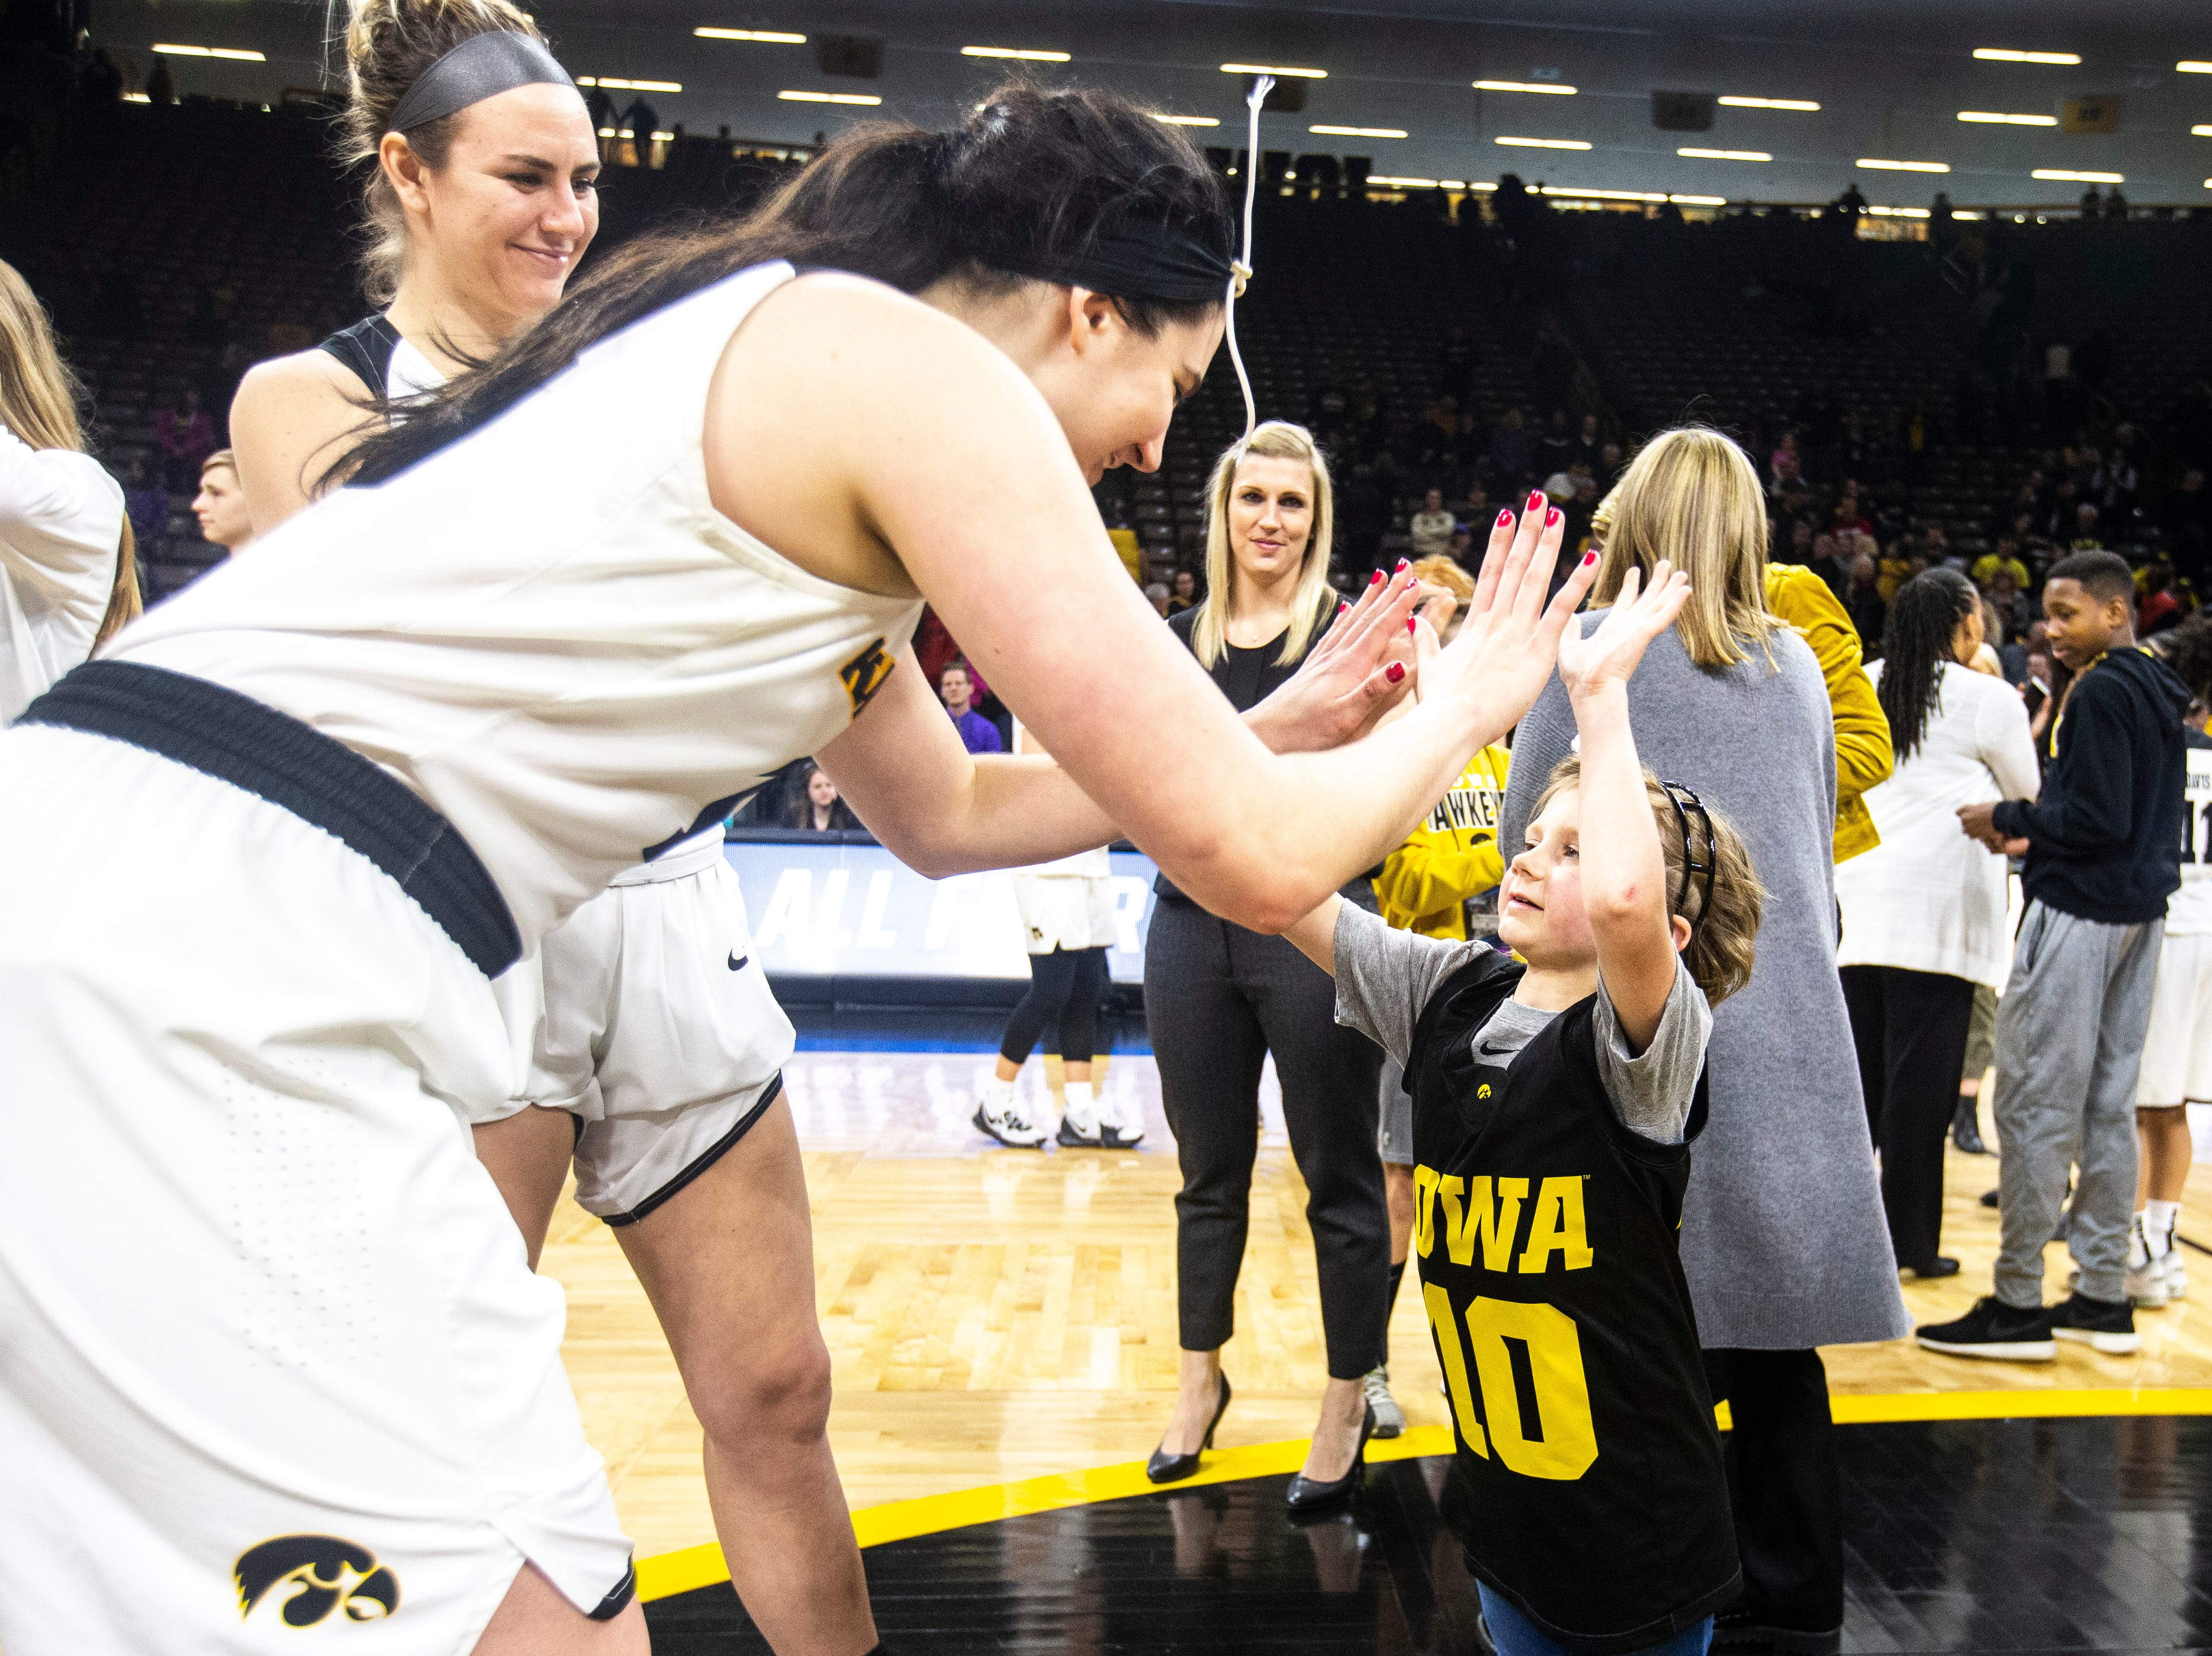 Iowa center Megan Gustafson (10) high-fives Harper Stribe, 6, after a NCAA women's basketball tournament second-round game, Sunday, March 24, 2019, at Carver-Hawkeye Arena in Iowa City, Iowa.